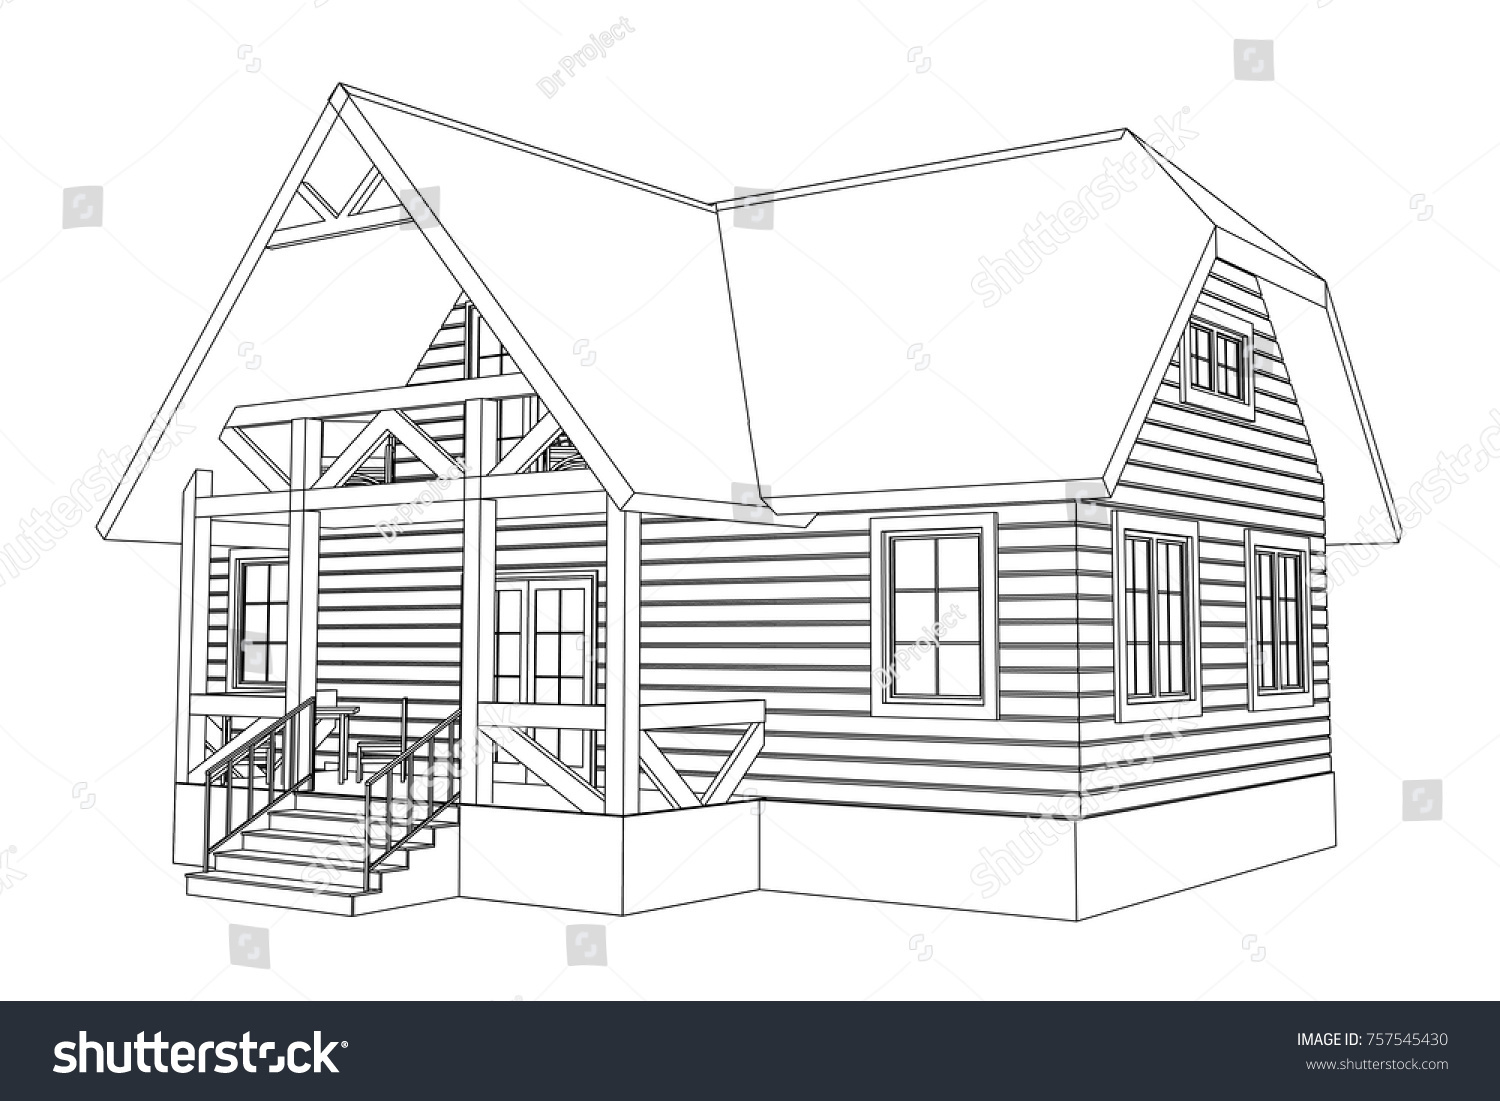 3d House Drawing Drawing Sketch House Stock Illustration 152890295